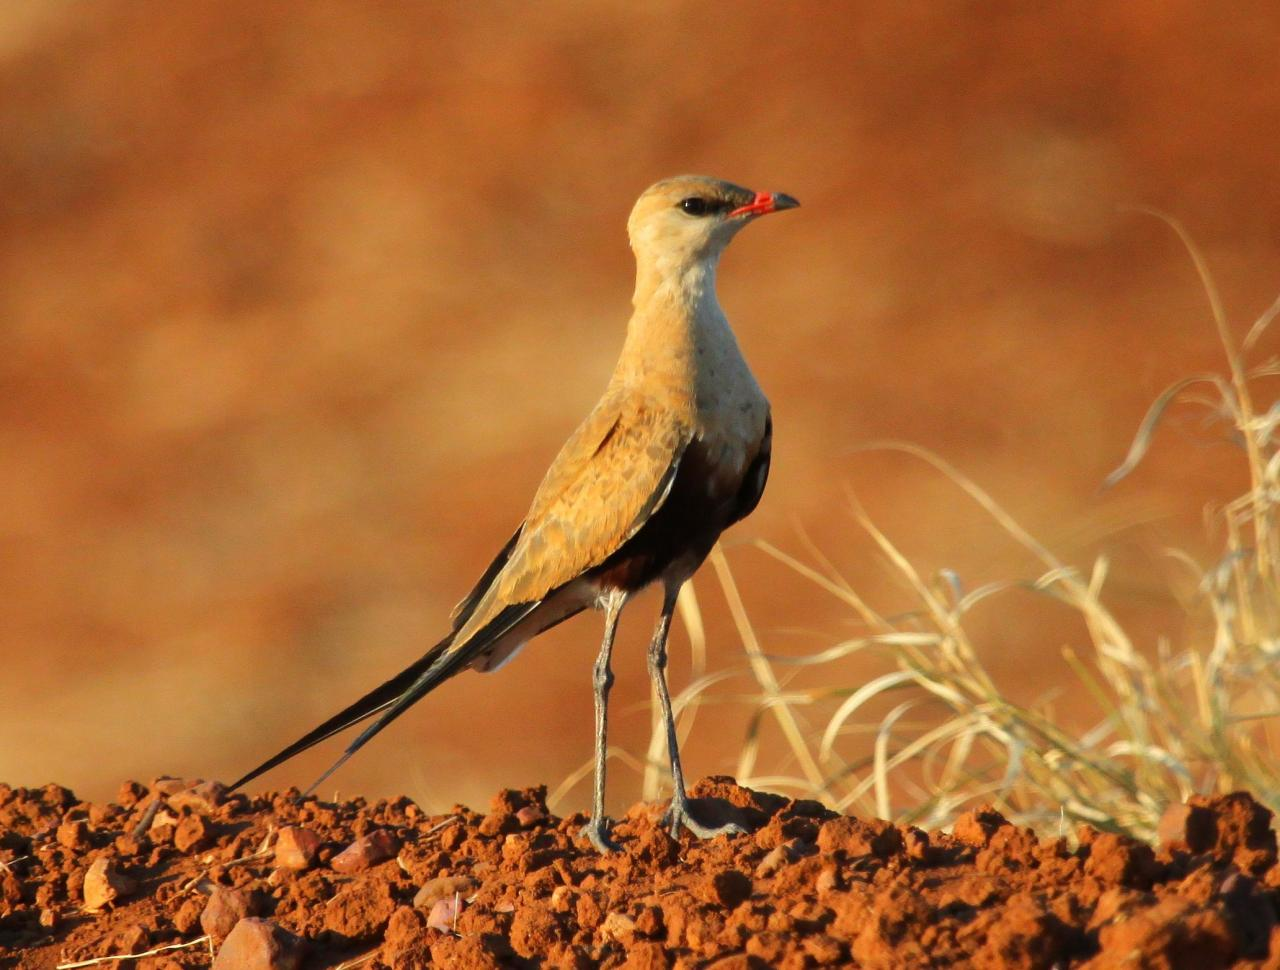 Australian Pratincole in the desert